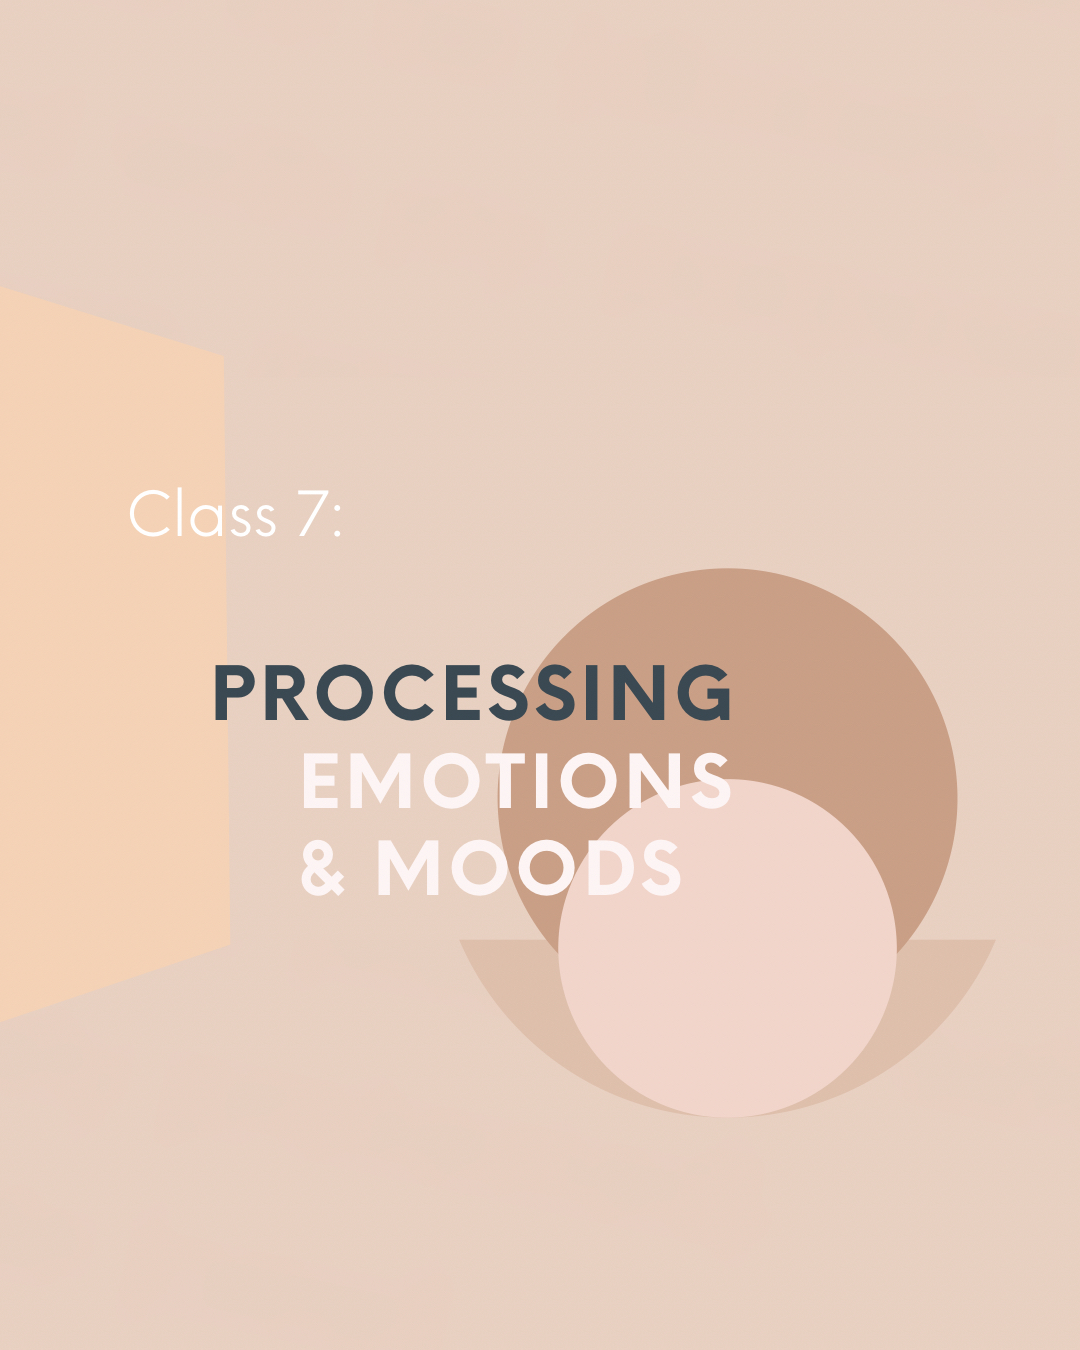 Processing Emotions & Moods - Emotions manifest in waves and sometimes in storms.Vibrating higher daily, self-mastery, healing, restoring, and journeying empowered, is about knowing how to effectively process what you're feeling on the inside.Emotions are teachers and guides.This class is about empowering you to (effectively) feel what you need to feel–and to (effectively), process it,  release all else, go beyond, and rise above.